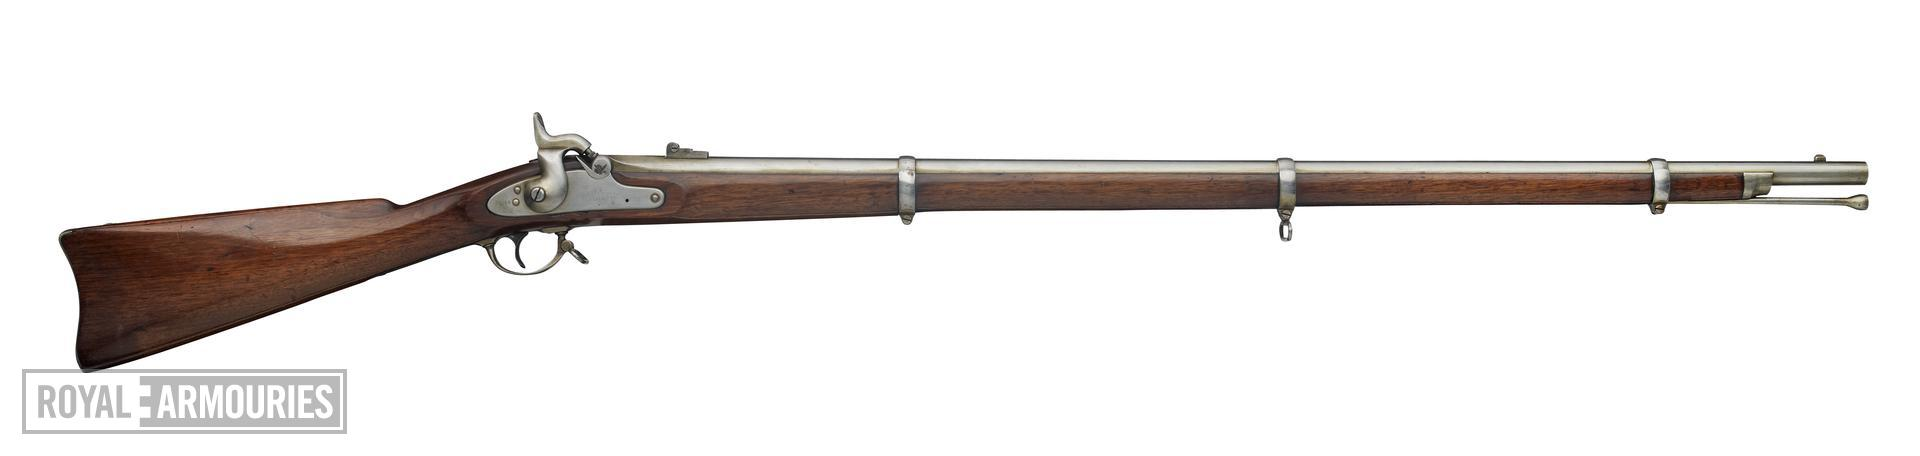 Percussion muzzle-loading military musket - Colt Model 1861